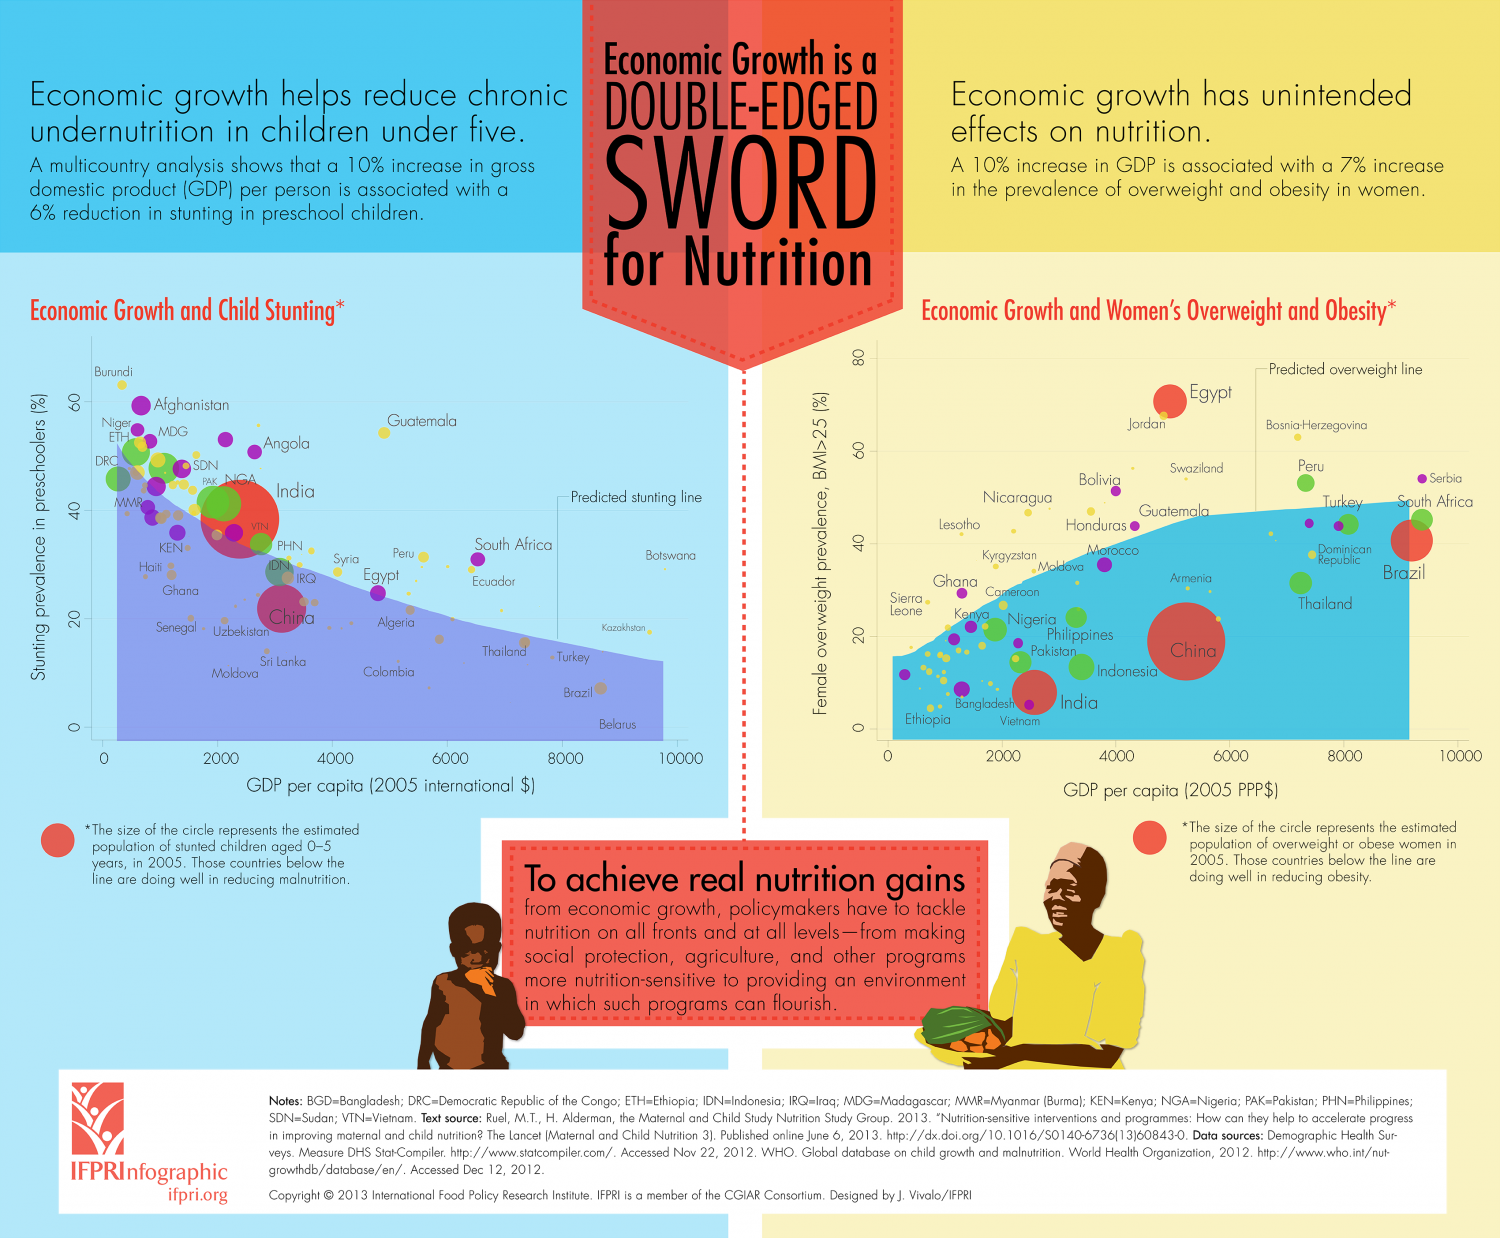 Economic Growth is a Double-Edged Sword for Nutrition Infographic